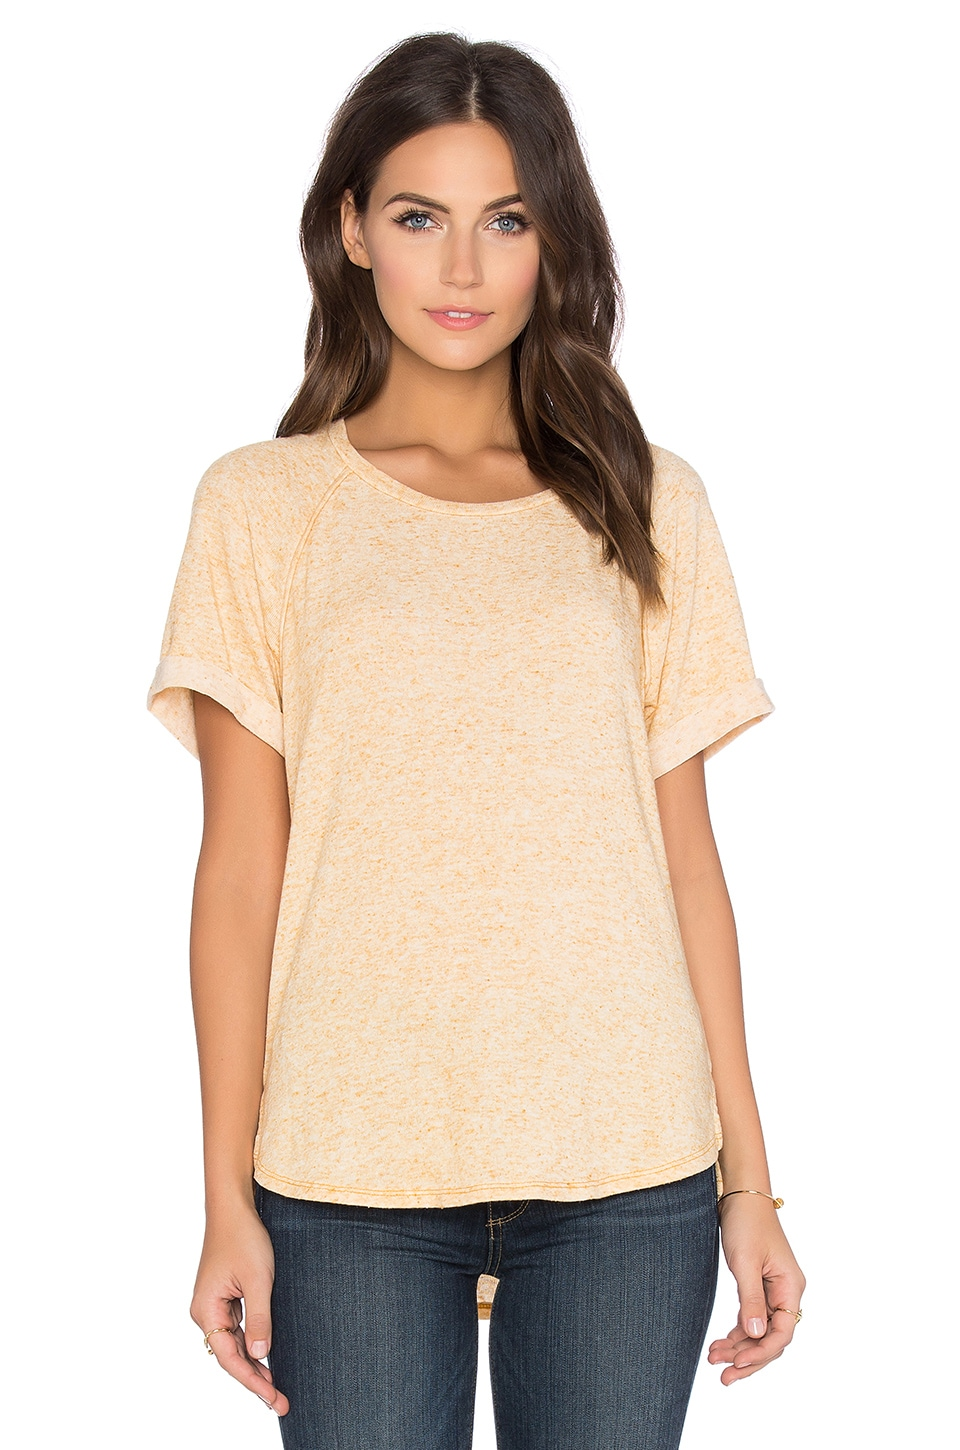 Linen Sweater Short Sleeve Crew Neck Tee